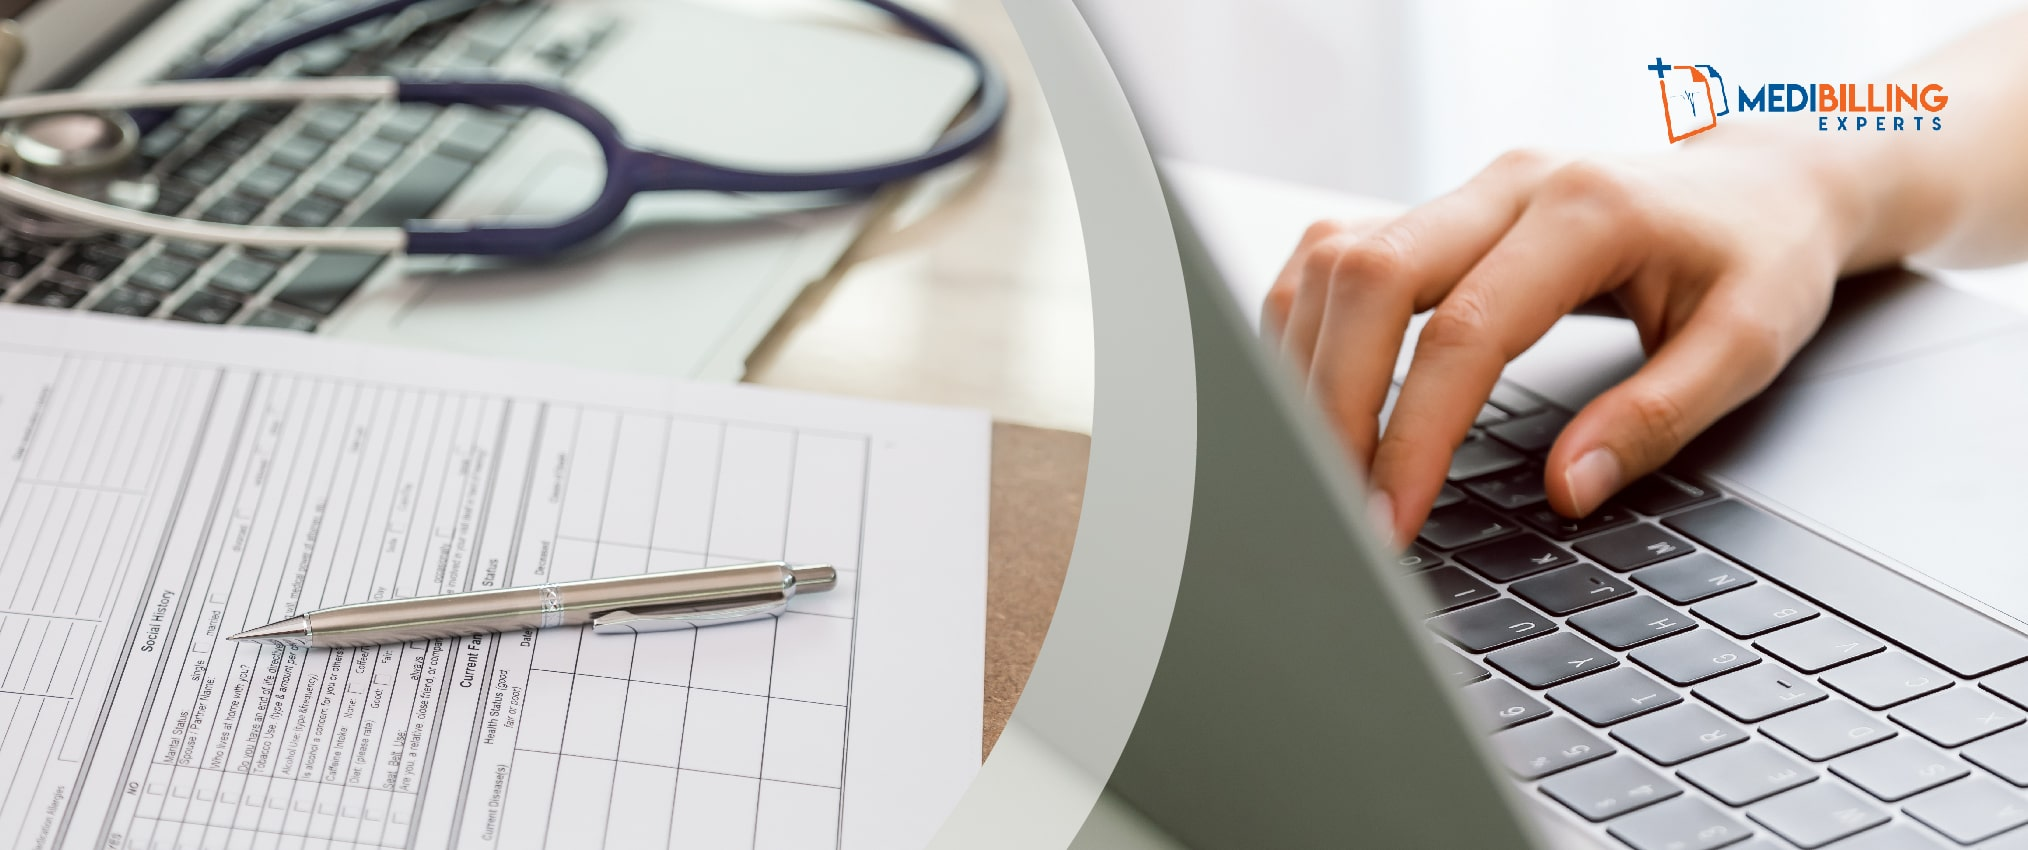 Important Qualities of Medical Billing or Coding Specialist